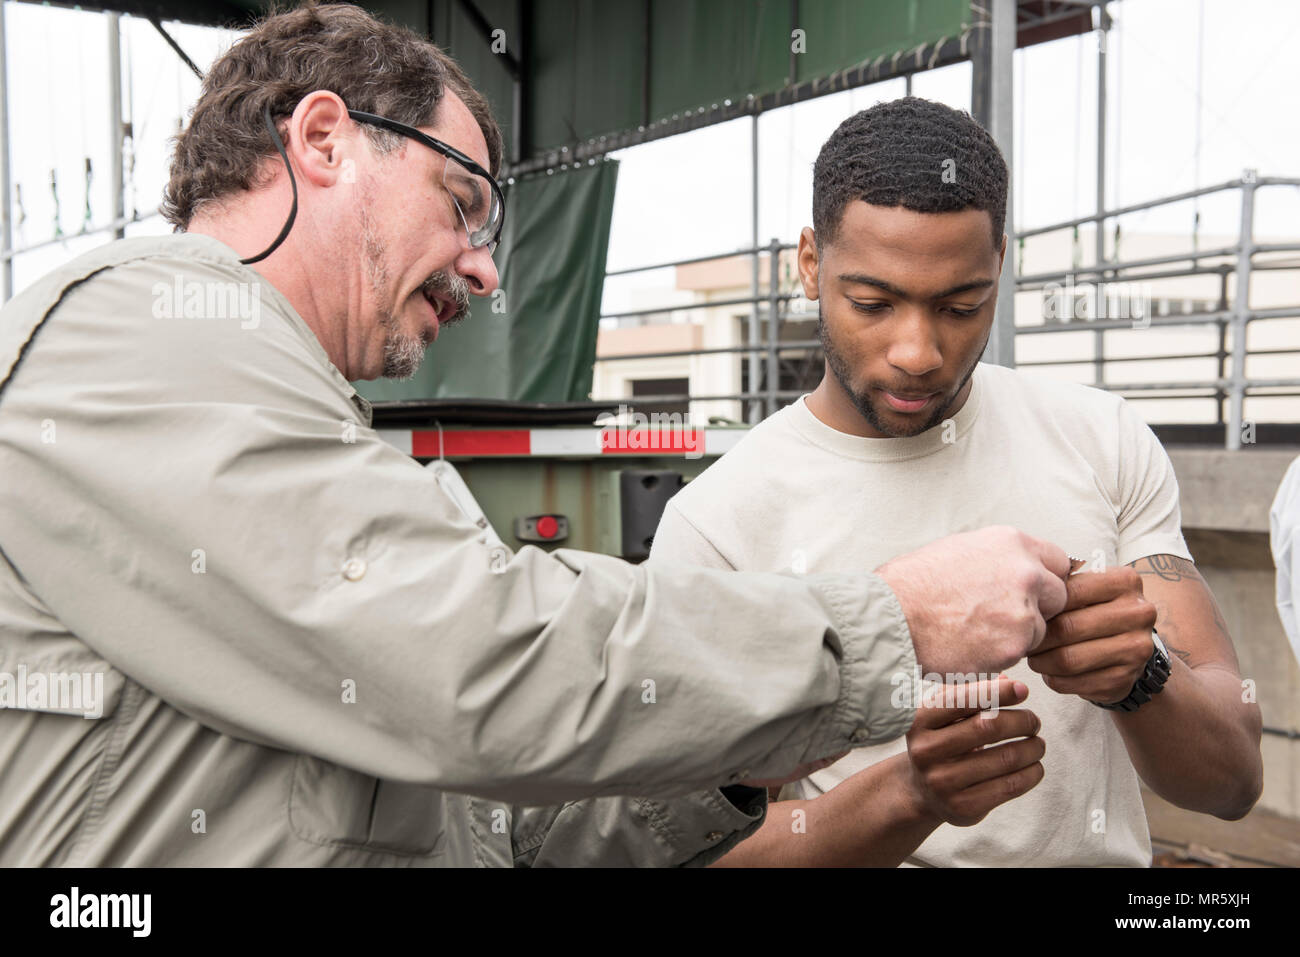 Larr Mudd, corrosion control trainer, shows U.S. Air Force Senior Airman Ladavian Varnes, 374th Logistics Readiness Squadron vehicle maintainer, a tool used to measure the thickness of applied solutions or paints to metal surfaces April 6, 2017, at Kadena Air Base, Japan. Varnes traveled from Osan Air Base to learn about and teach the 18 LRS's new vehicle corrosion control program. (U.S. Air Force photo by Senior Airman Omari Bernard) - Stock Image